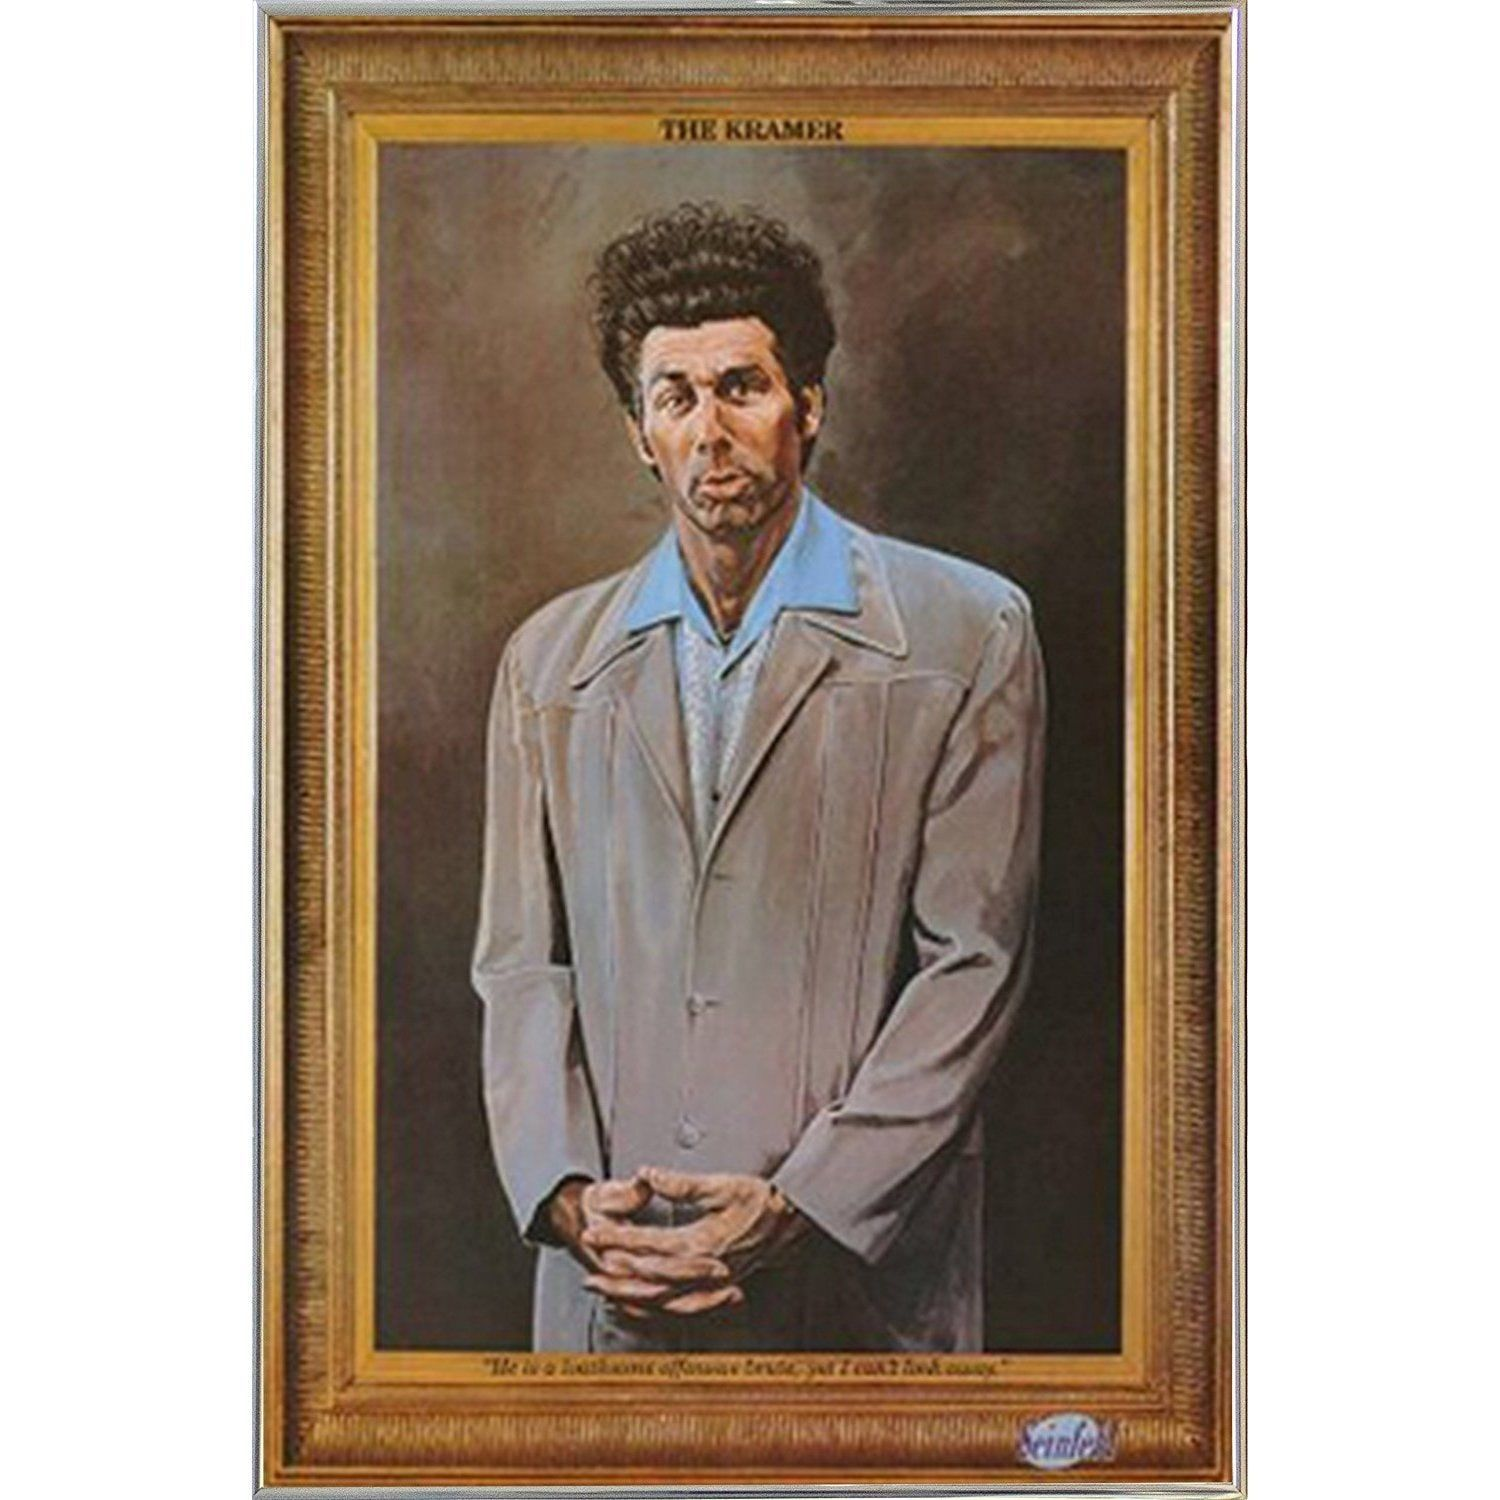 USA Seinfeld - Kramer Poster in a Metal Frame | Products | Pinterest